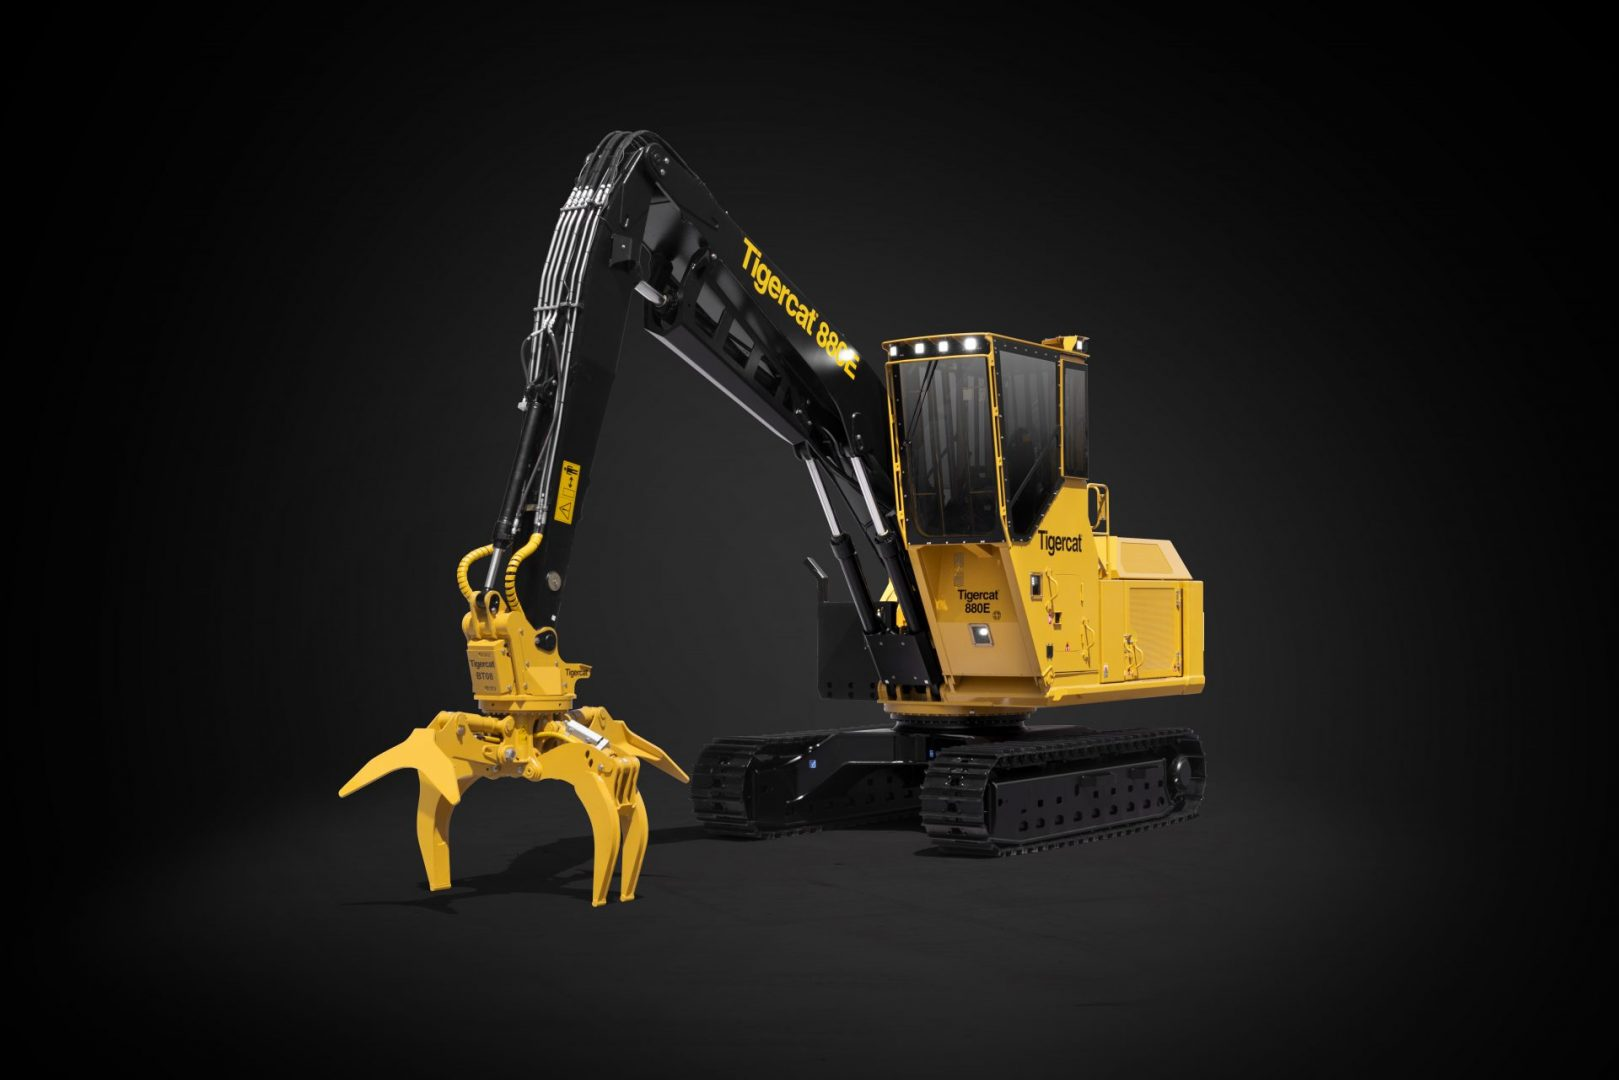 Tigercat product photo of the 880E in front of a black background